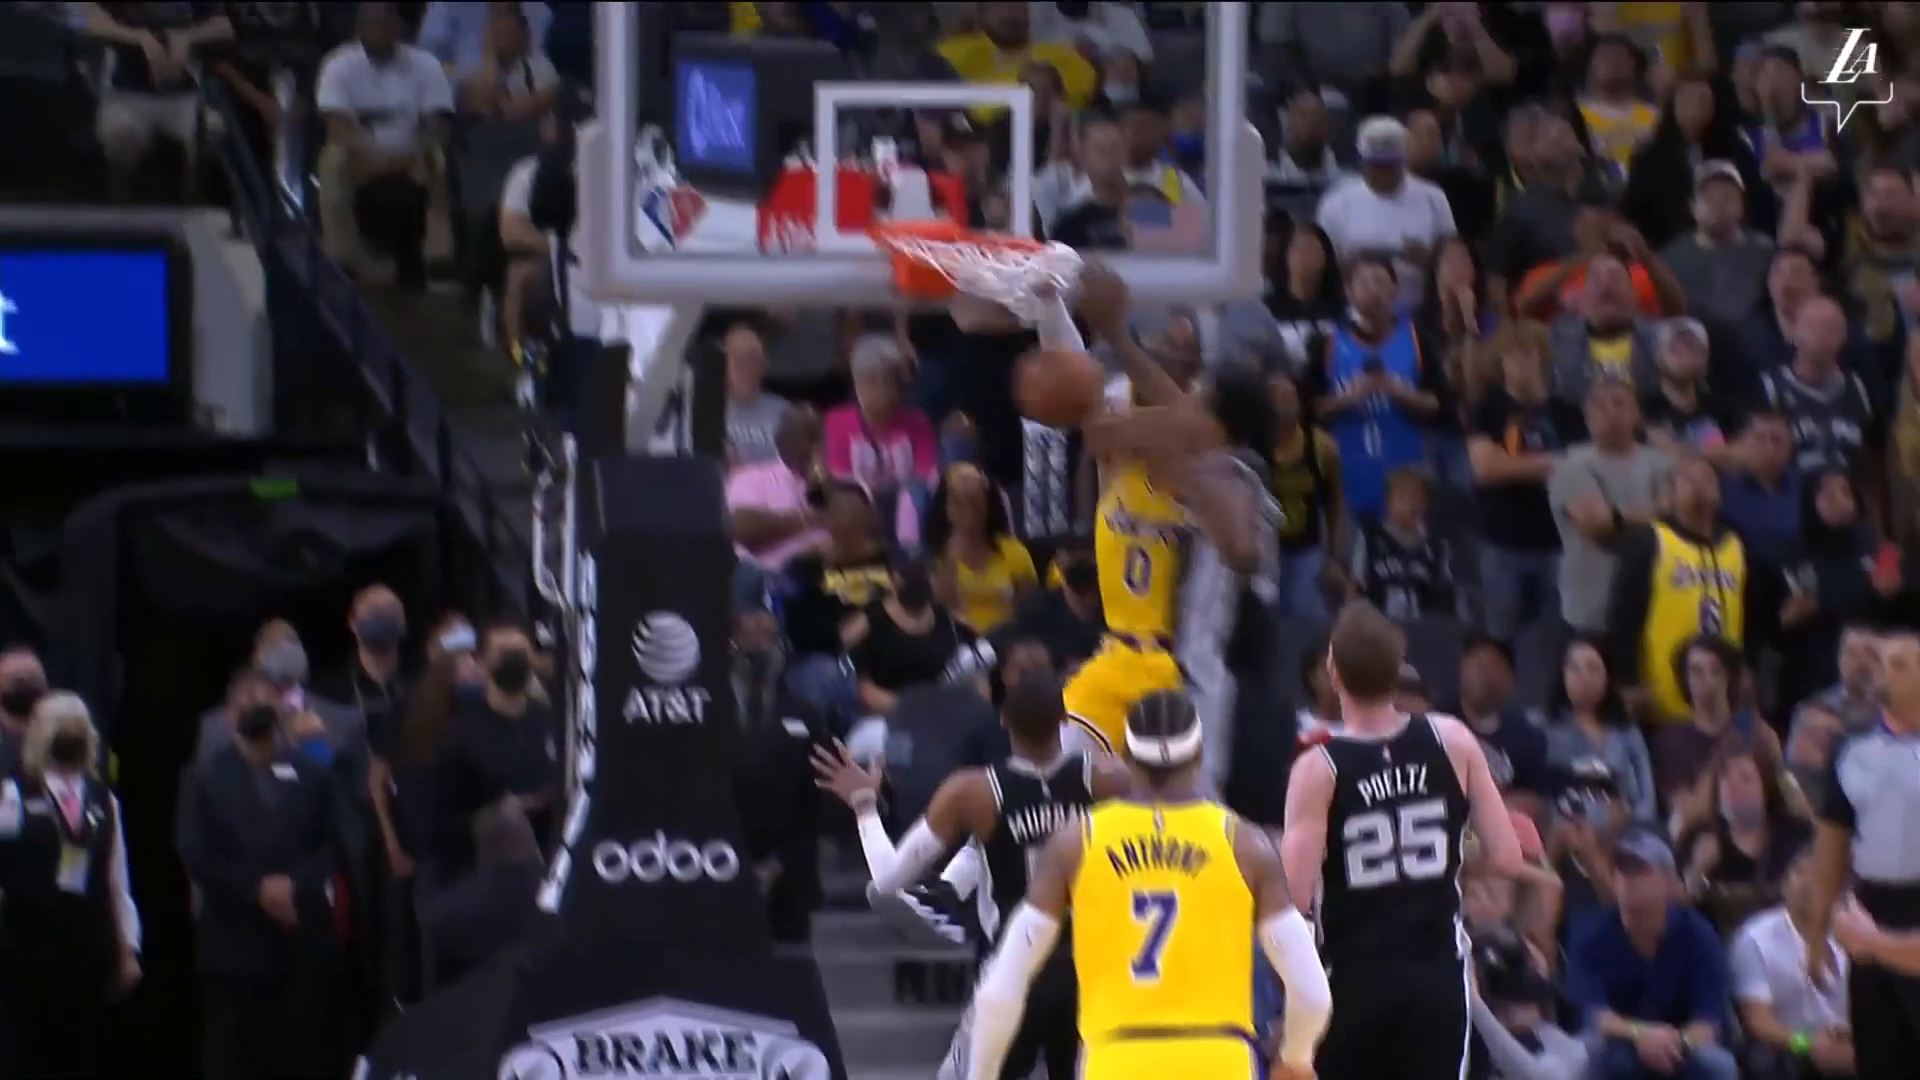 Lakers vs. Spurs Highlights (10/26/21)